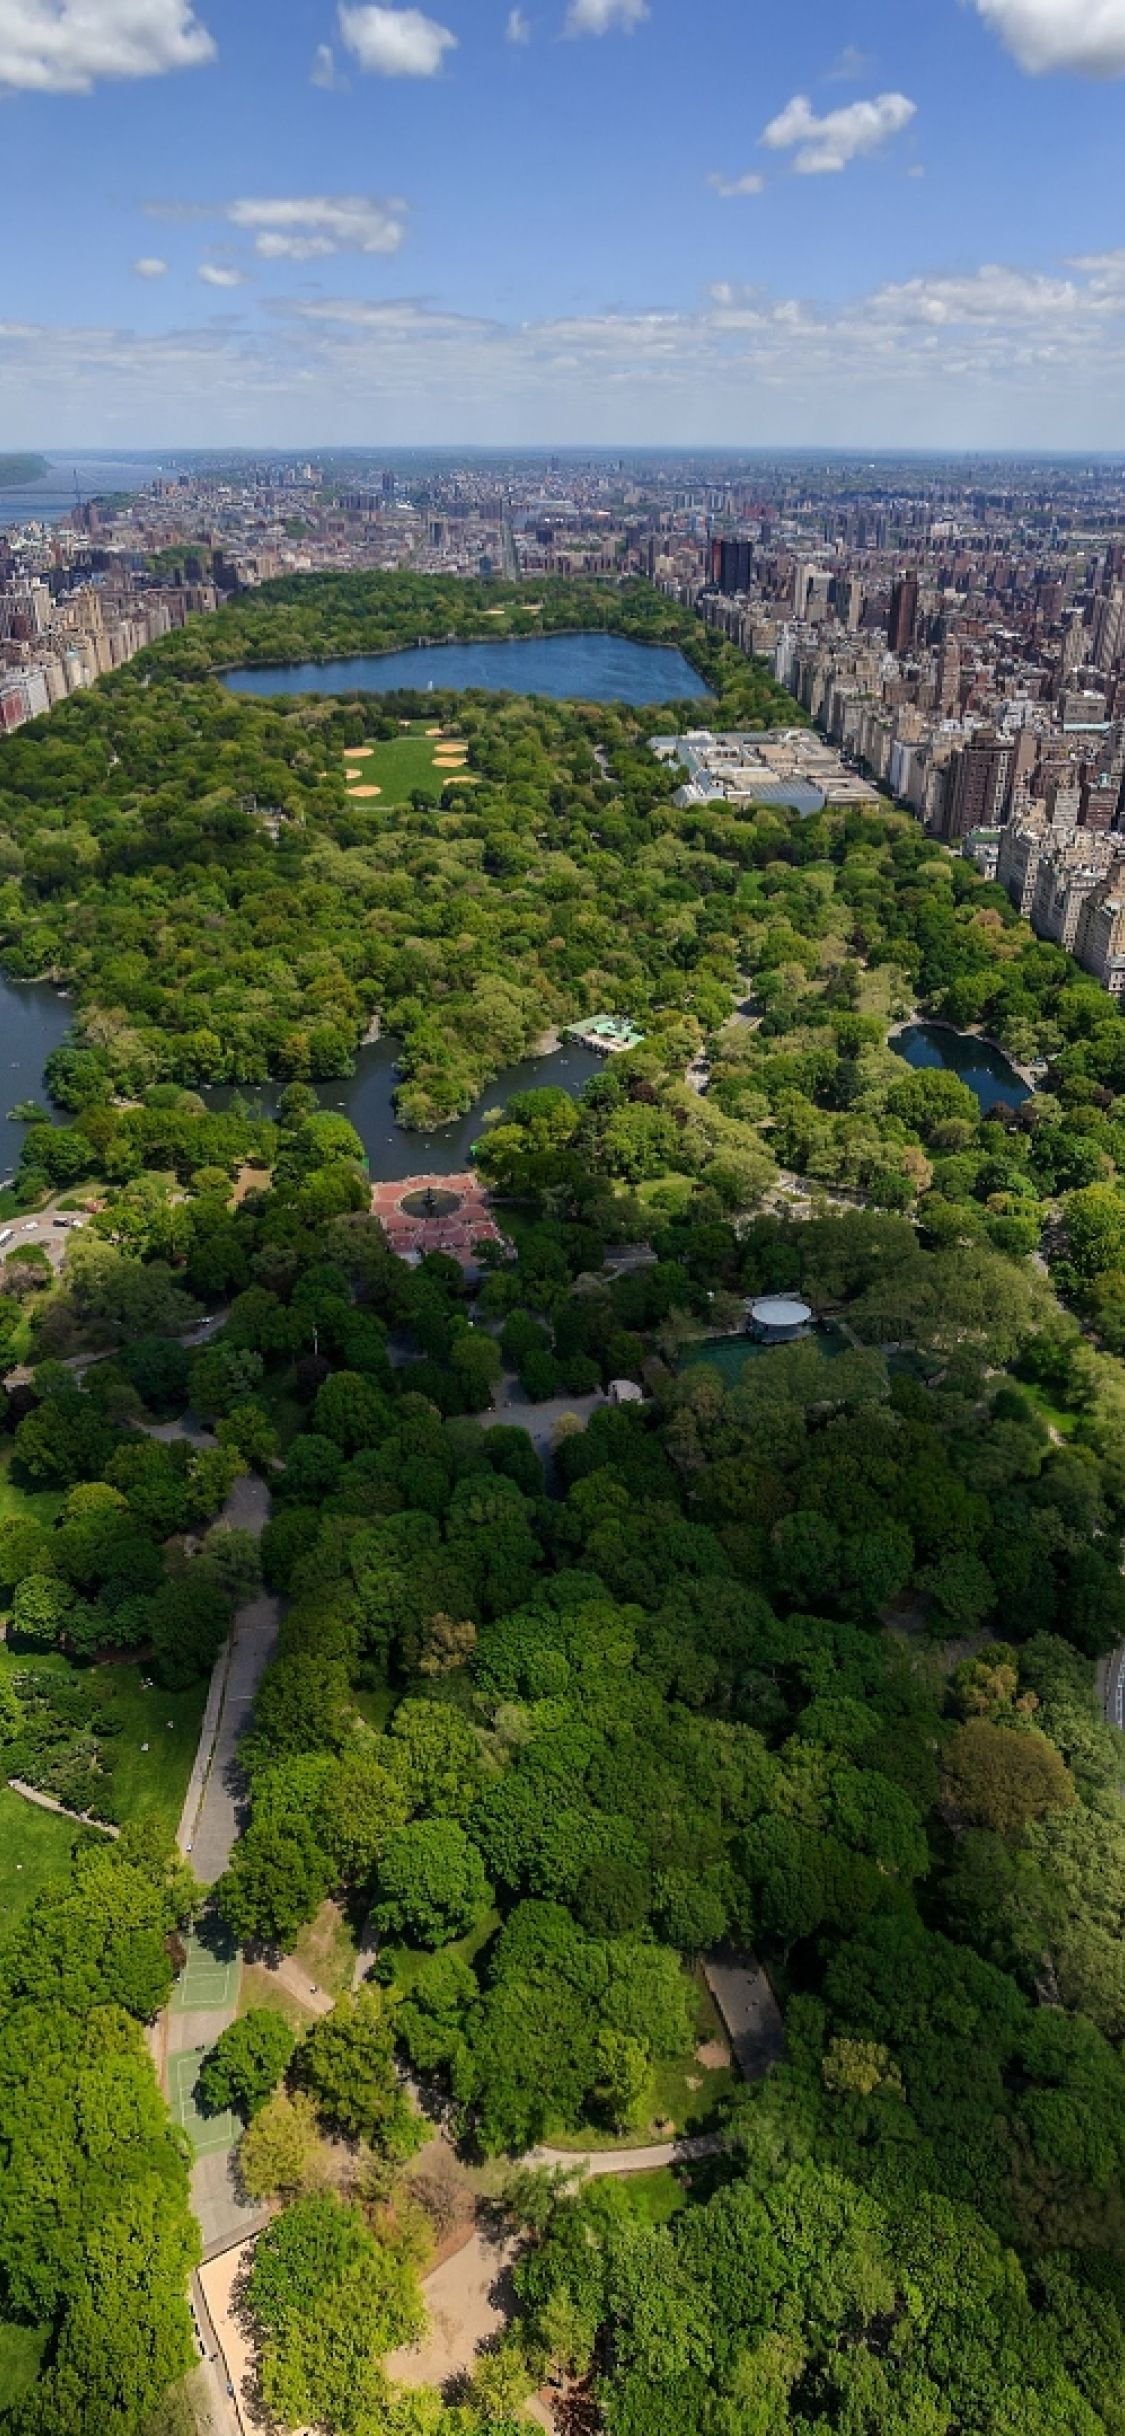 1125x2436 1125x2436 new york, central park, top view Iphone XS,Iphone ...